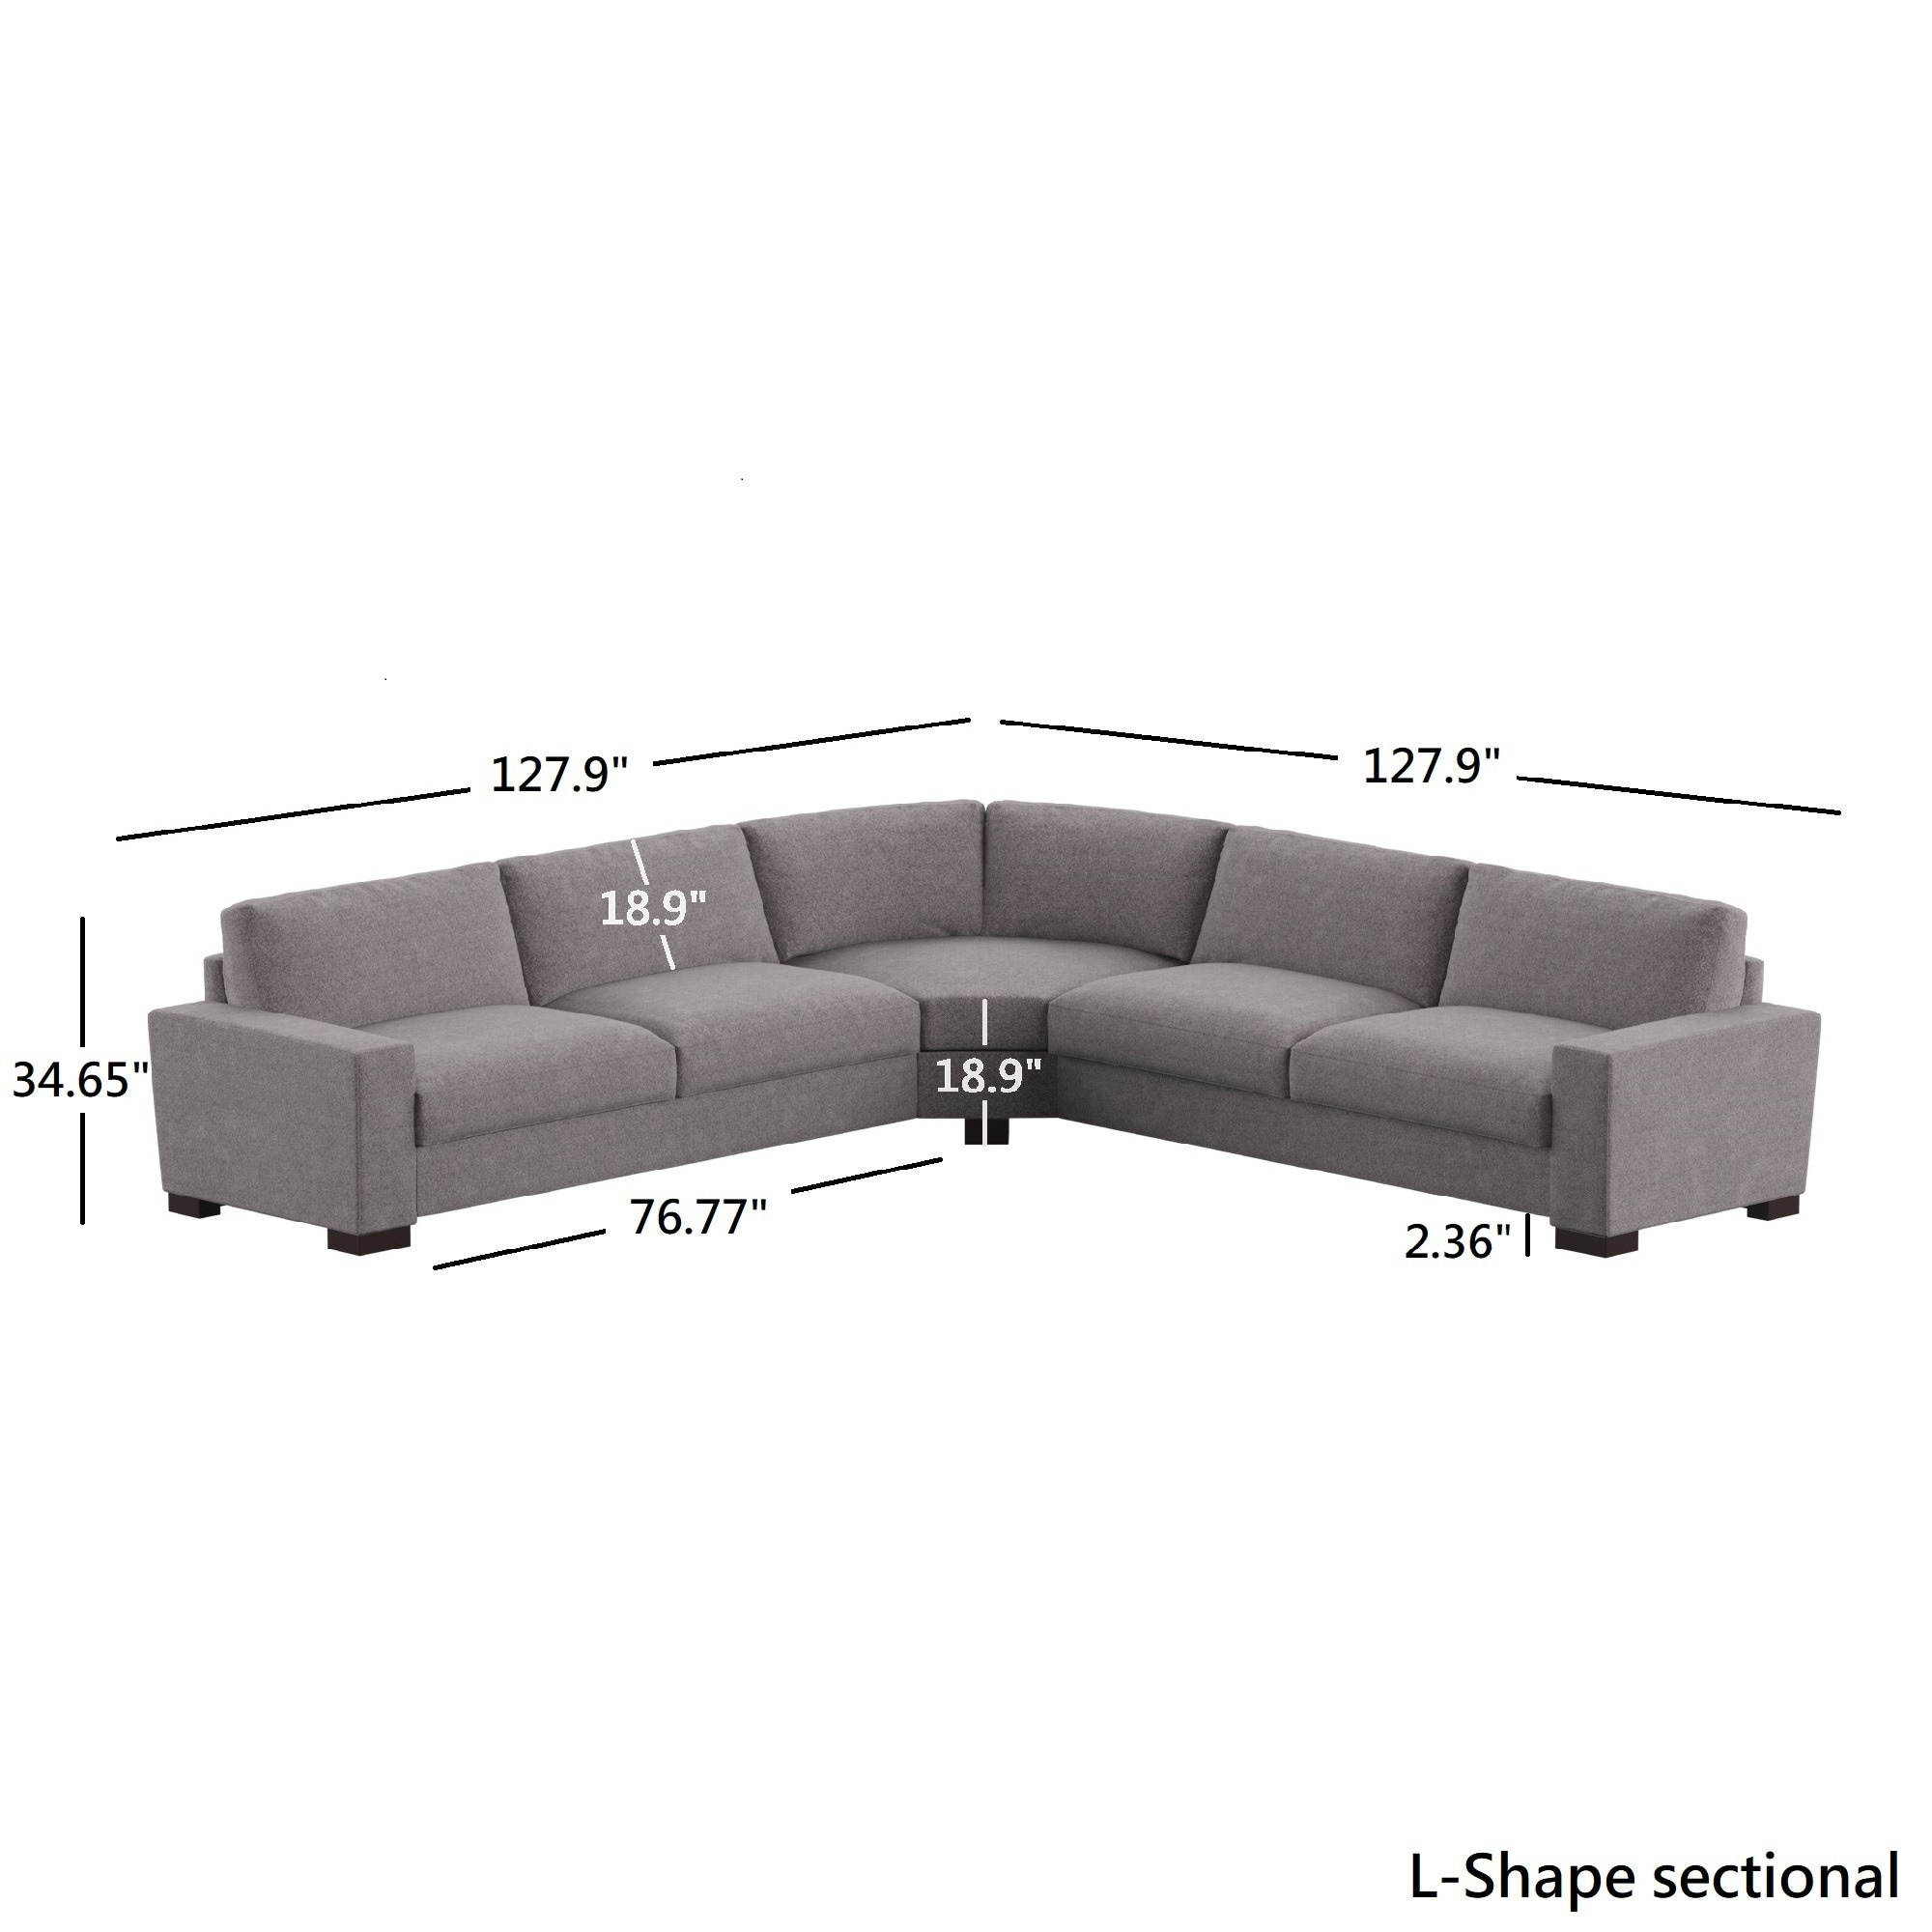 Ashton Grey Fabric Double Sided Down Feather Modular Sectional By Inspire Q Artisan